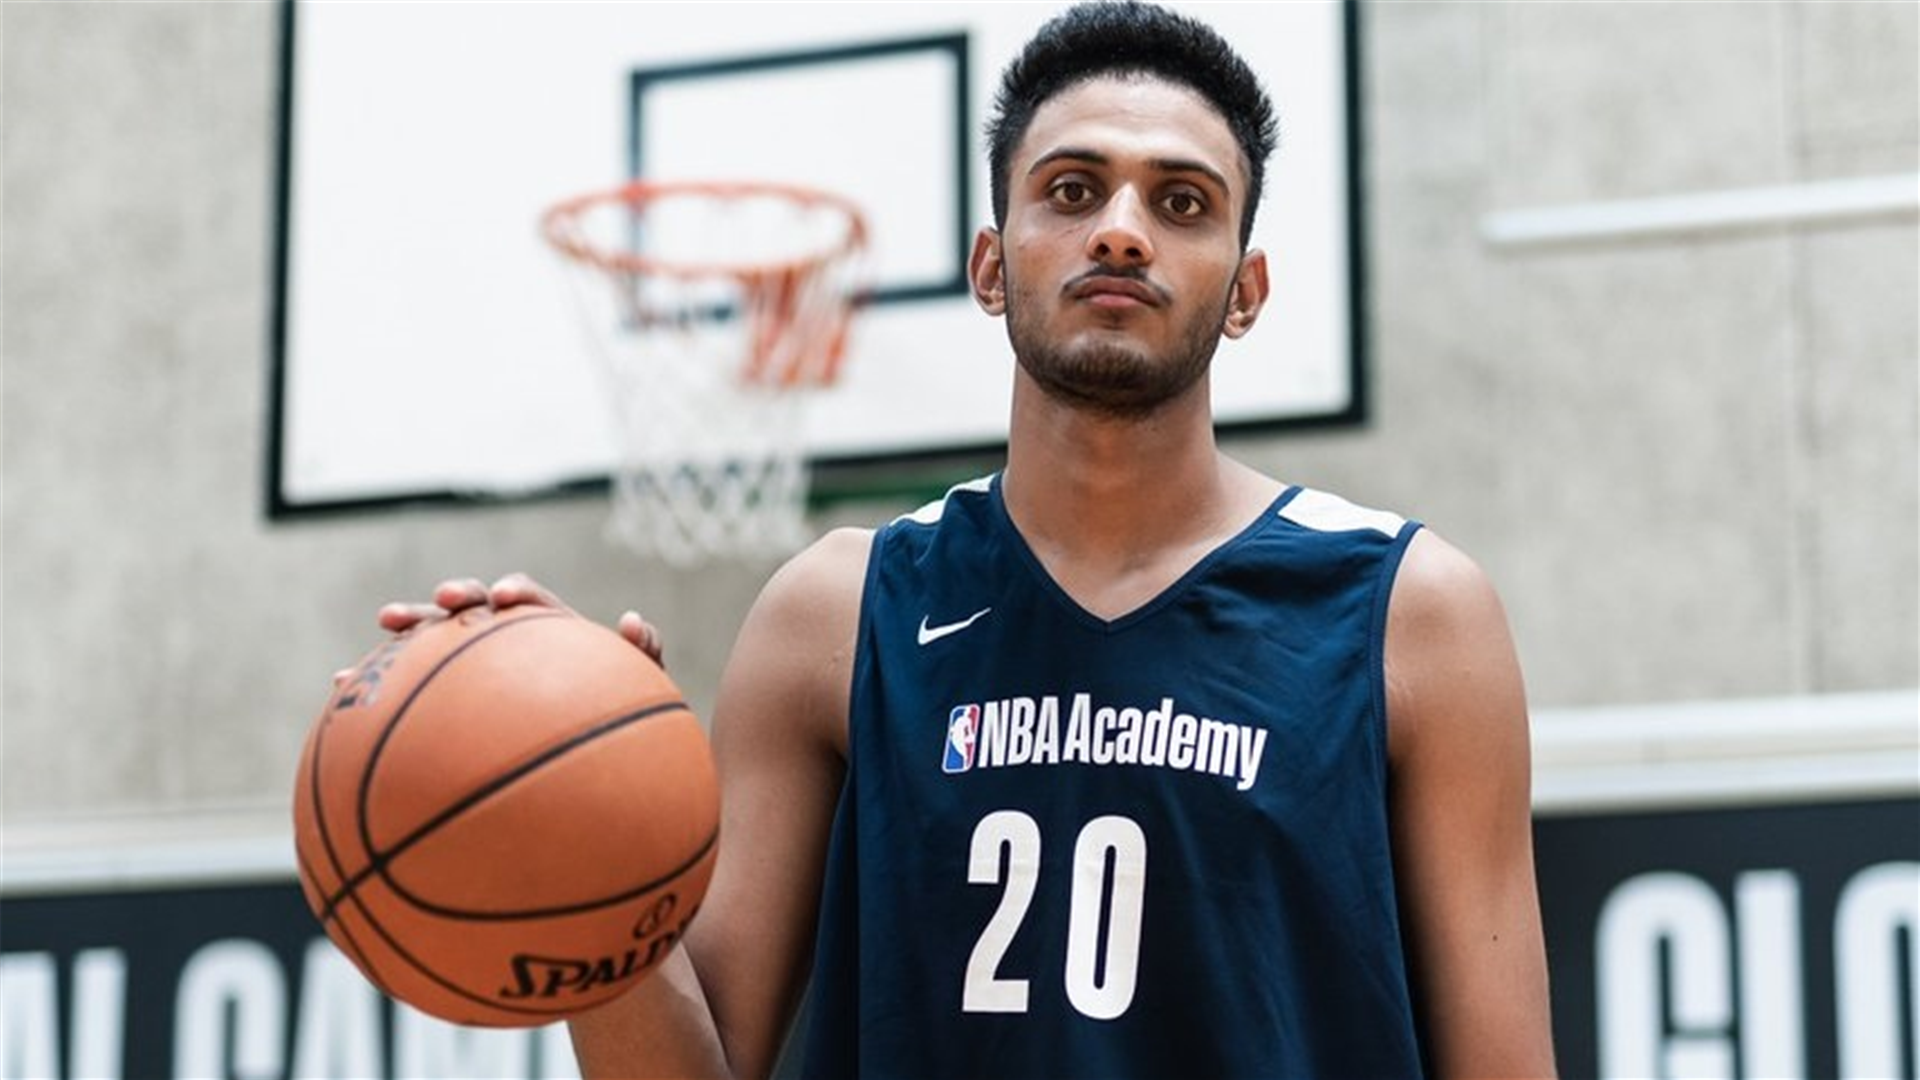 """Singhing"""" his Praises: Princepal Singh is the latest Punjabi star to make  basketball headlines   NBA.com India   The official site of the NBA"""